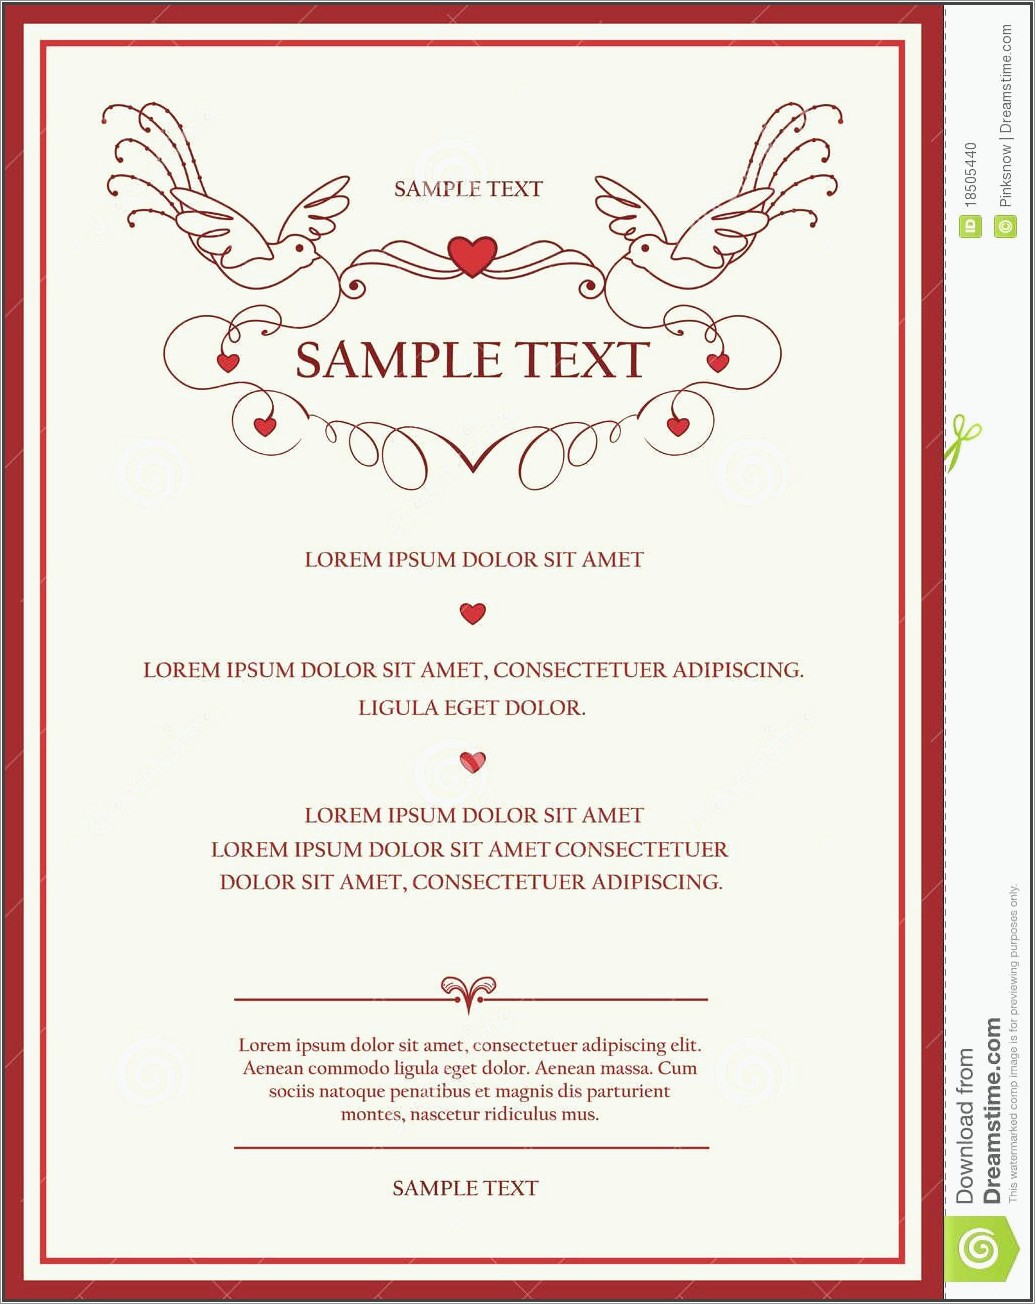 Ordination Invitation Cards Designs